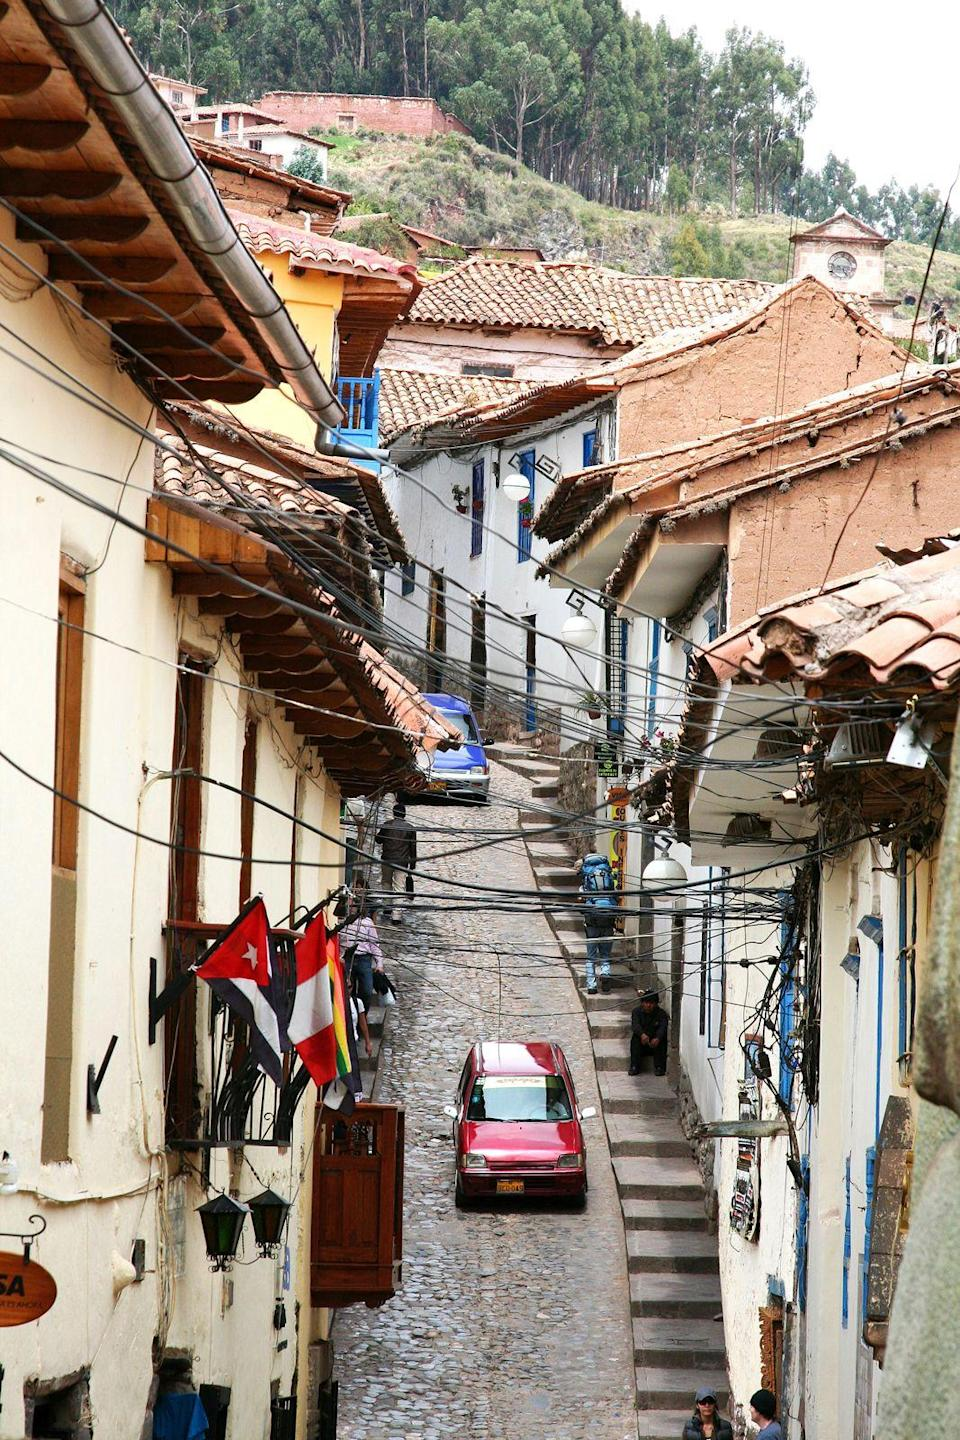 """<p><strong>Where To Stay:</strong> Most travellers bunk up in Aguas Calientes when visiting Machu Picchu. The hotels there are relatively low-key and sparse. For a clean, safe bet, try <a href=""""http://flowersmachupicchu.com/"""" rel=""""nofollow noopener"""" target=""""_blank"""" data-ylk=""""slk:Hotel Flower's House"""" class=""""link rapid-noclick-resp"""">Hotel Flower's House</a>, which has rooms for around £60 per night, including breakfast. It's located near the train station and walking distance from all the restaurants in town.</p><p><strong>Insider Tip:</strong> On your way back, stop to see Cusco, a UNESCO World Heritage city located 11,000 feet above sea level. For dinner, head to <a href=""""https://www.cicciolinacuzco.com/"""" rel=""""nofollow noopener"""" target=""""_blank"""" data-ylk=""""slk:Cicciolina"""" class=""""link rapid-noclick-resp"""">Cicciolina</a>, a Peruvian tapas restaurant located in one of the city's old colonial houses.</p><span class=""""copyright"""">Photo: Ramona Settle / Alamy. </span>"""